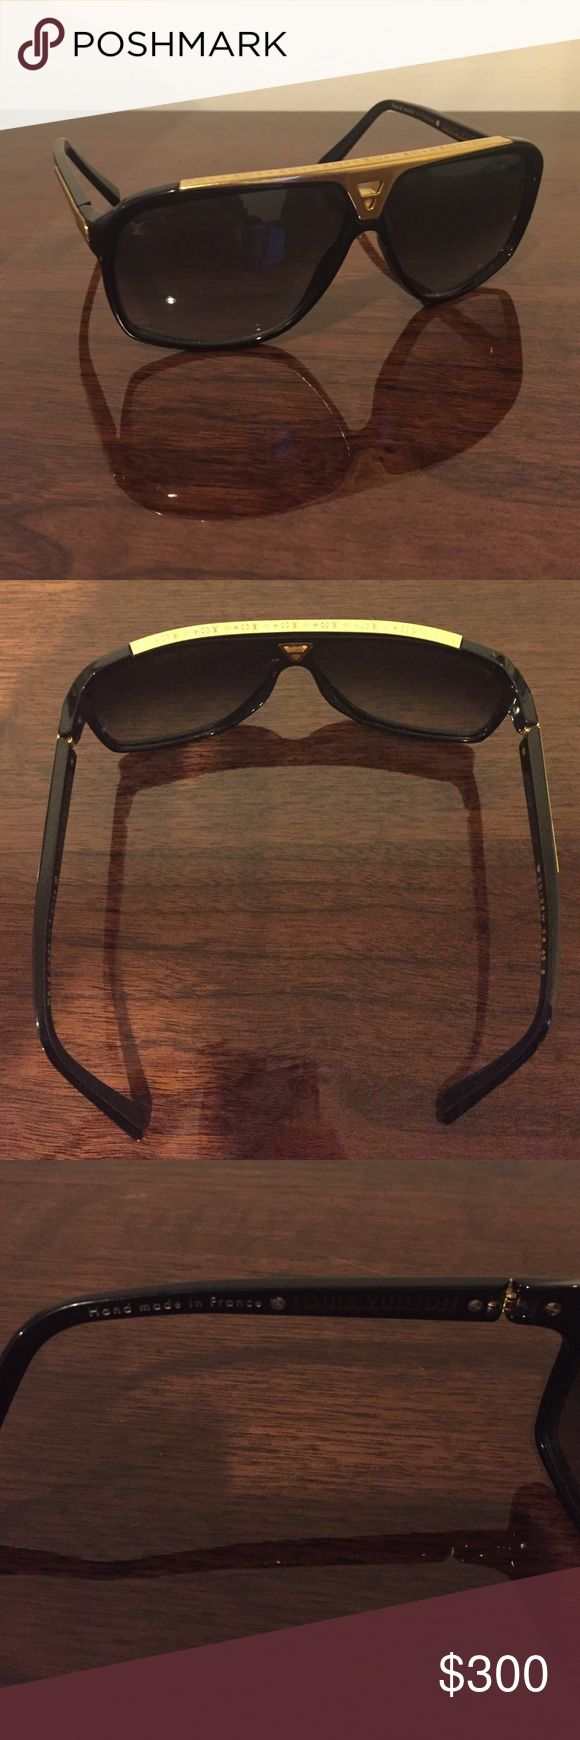 Louis Vuitton Evidence Sunglasses 100% Authentic Louis Vuitton Evidence Sunglasses. Paid $675+tax at Louis Vuitton store. Beautiful black & gold color. In good condition. A little scratched up and gold hardware is a little bent but still wearable and looks great on! No trades. Louis Vuitton Accessories Sunglasses